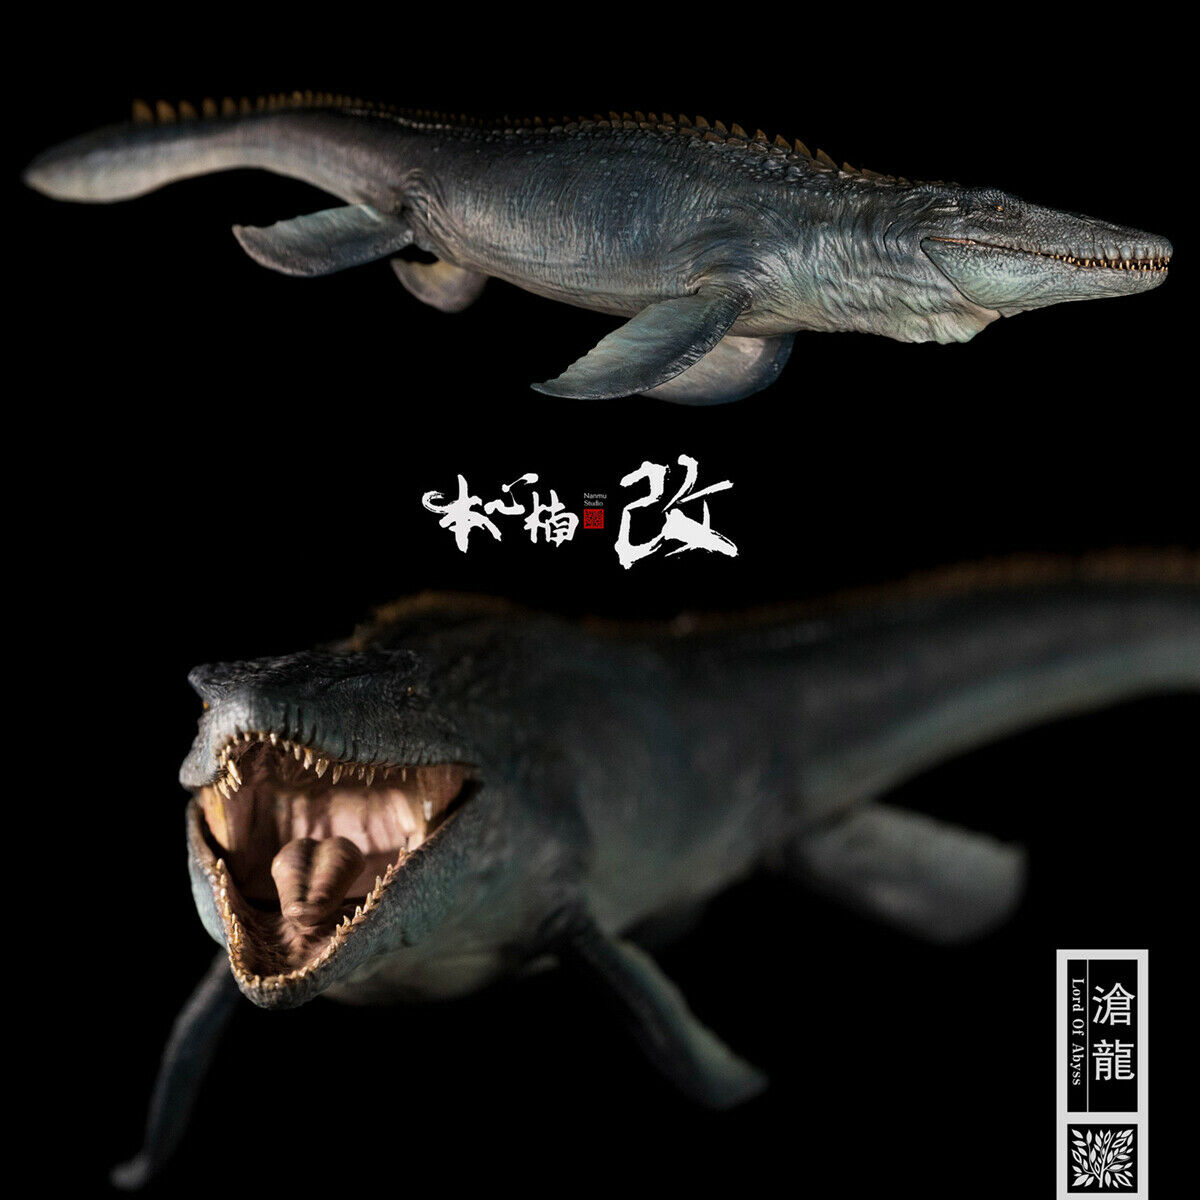 24.8 In Nanmu Studio 1/35 Mosasaurus Original Figure Lord Of Abyss Dinosaur Collector Animal Adults Toys Gift Pre-order Statue